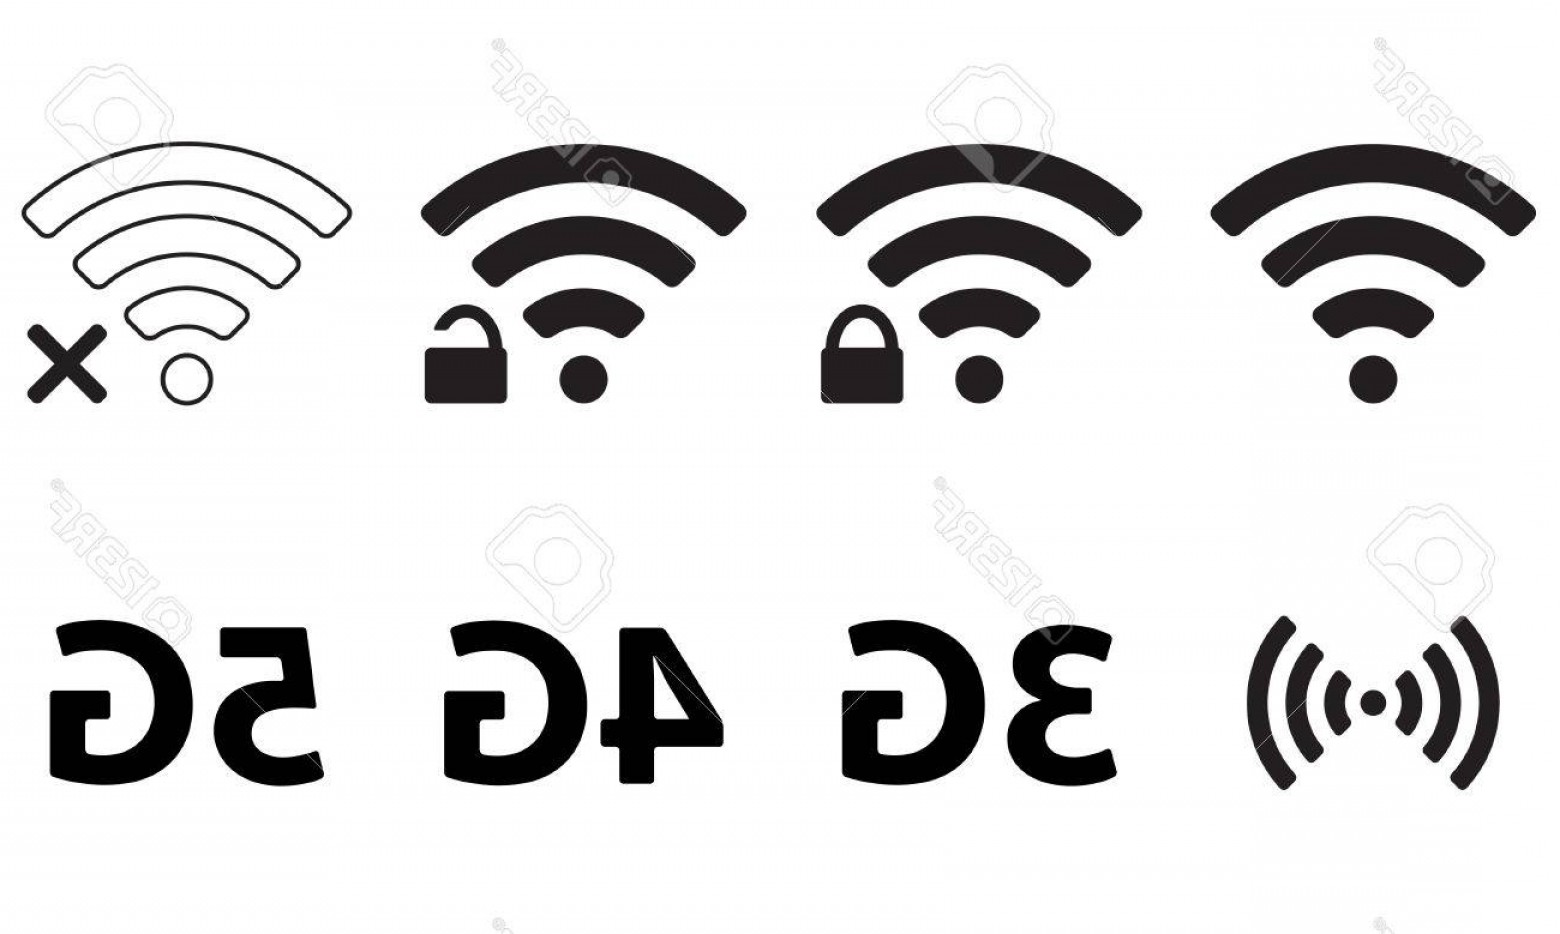 Wifi Symbol Clip Art Vector: Photostock Vector Wireless And Wifi Icon Set For Remote Internet Access Podcast Vector Symbol G G And G Technology